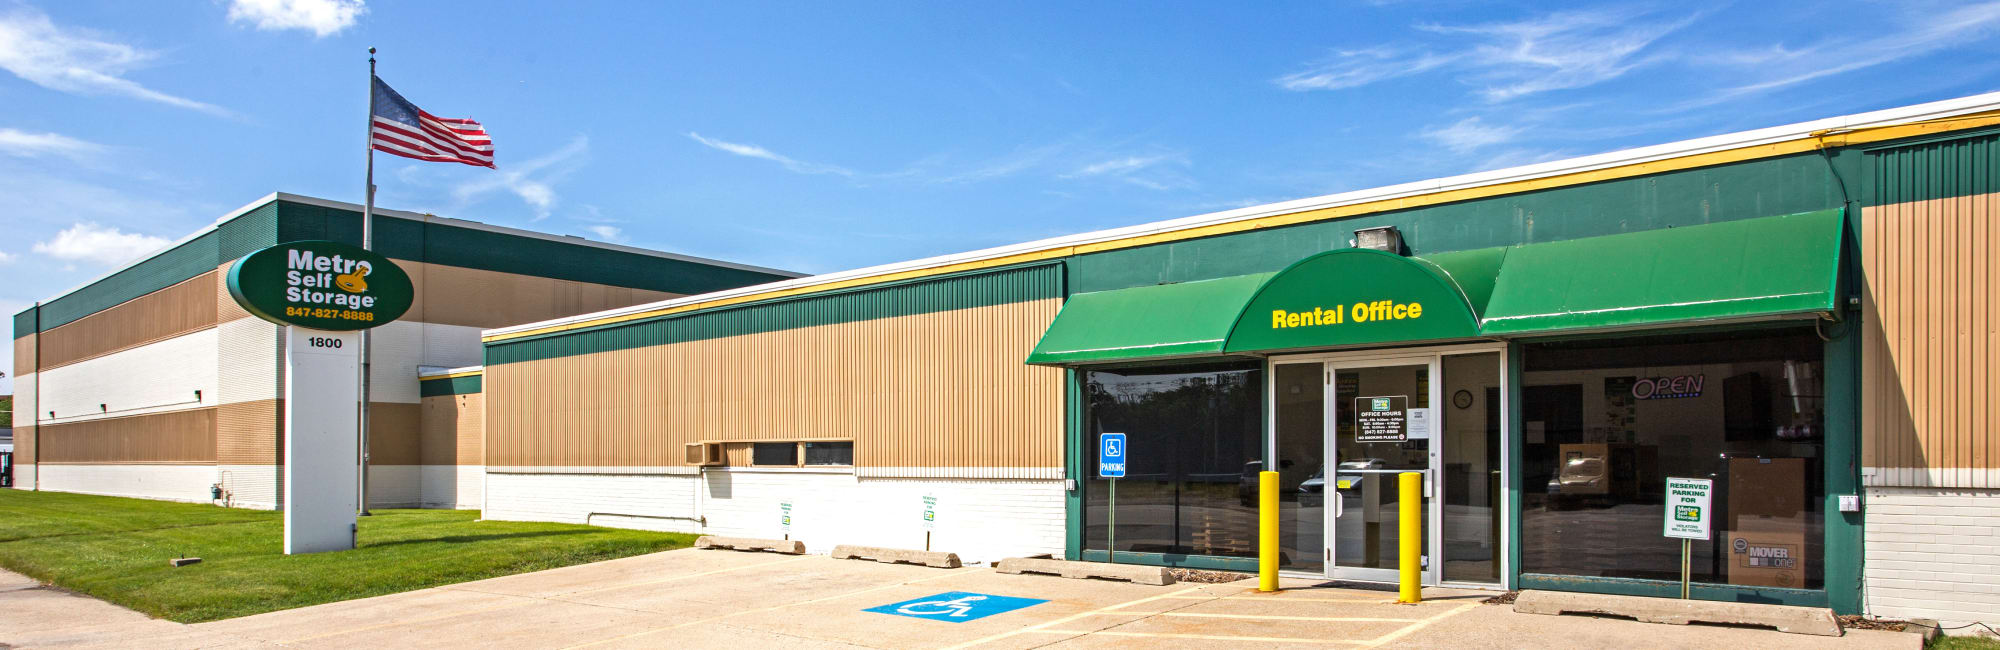 Metro Self Storage in Des Plaines, IL